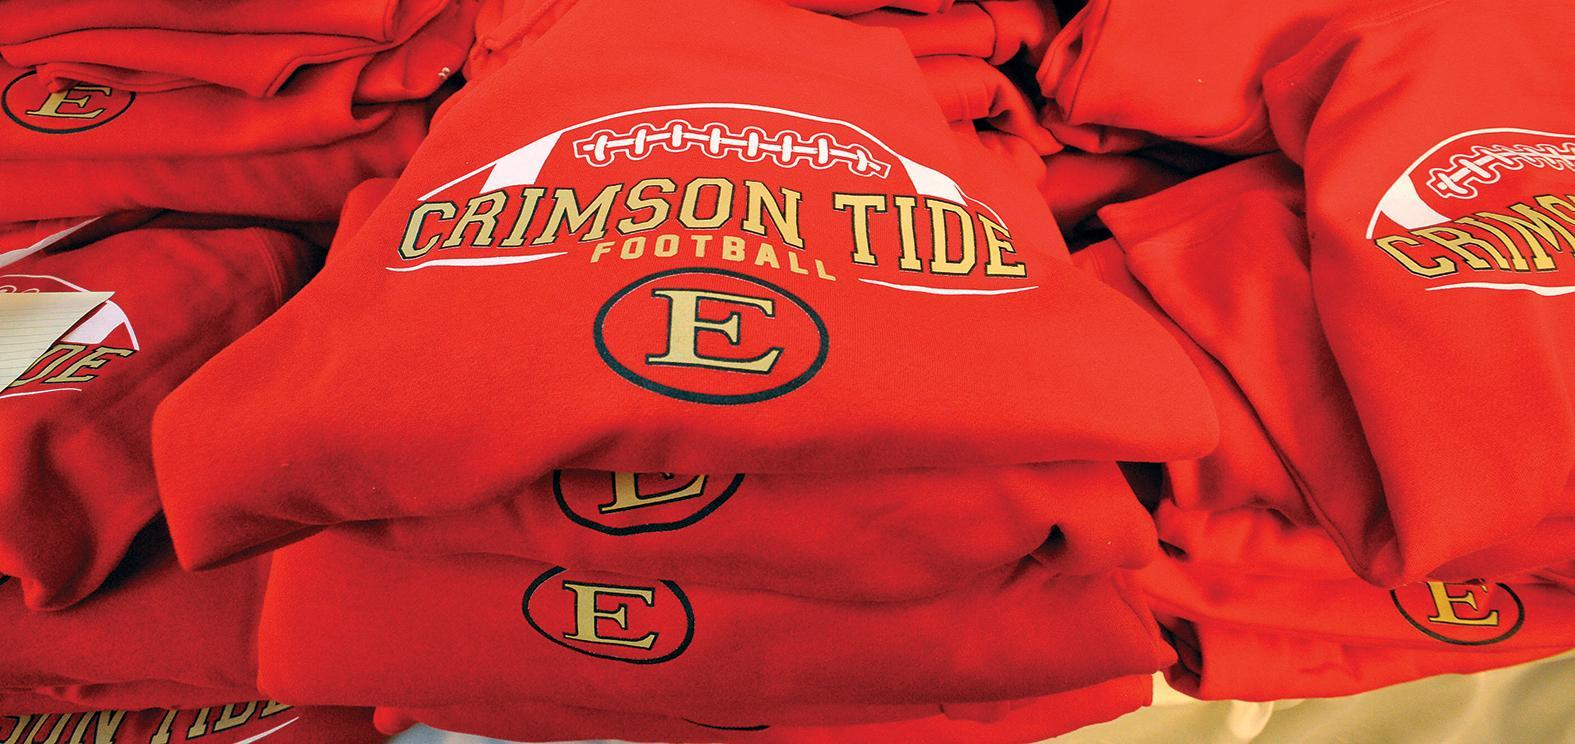 Crimson Tide Football Sweatshirts